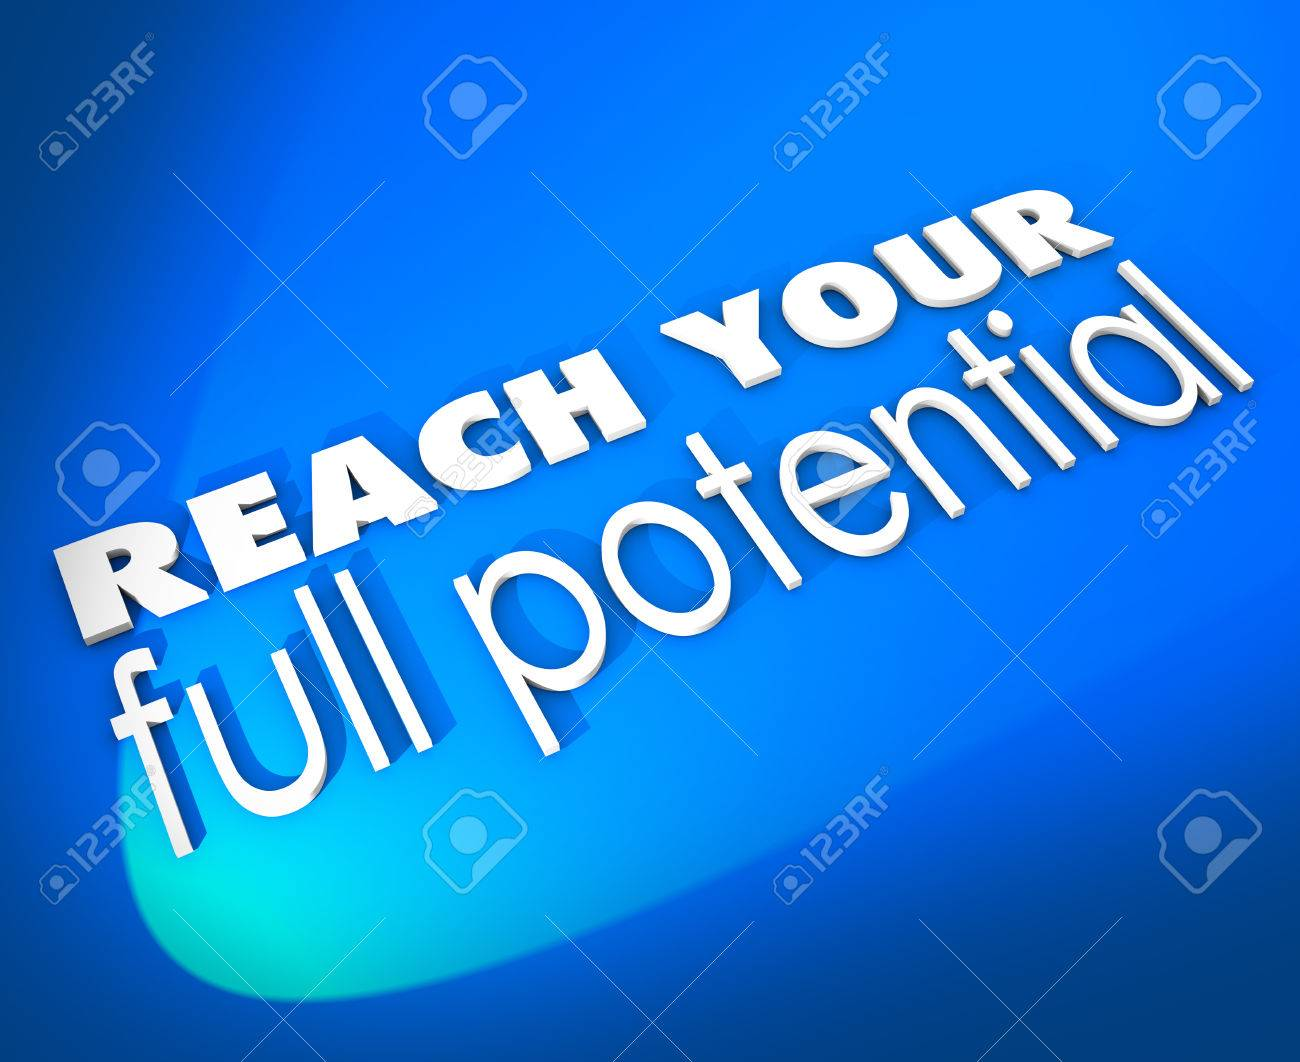 Reach Your Full Potential (Collection)